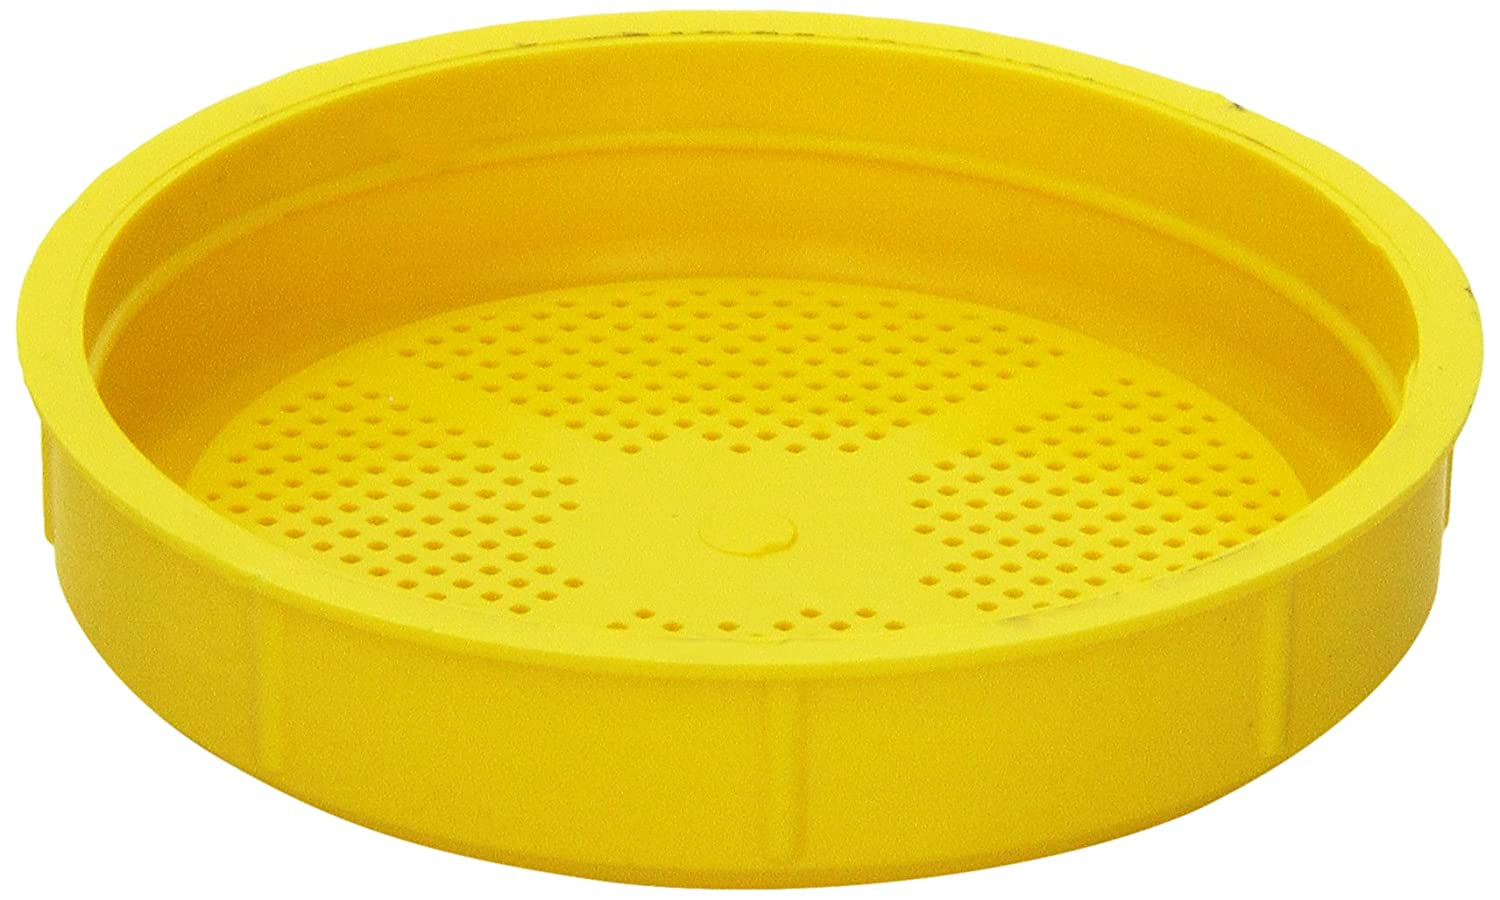 The Sprout House Yellow Sprouting Lid for Wide Mouth Mason Jar BPA FREE,1.6 Ounce SHYELLOWLID